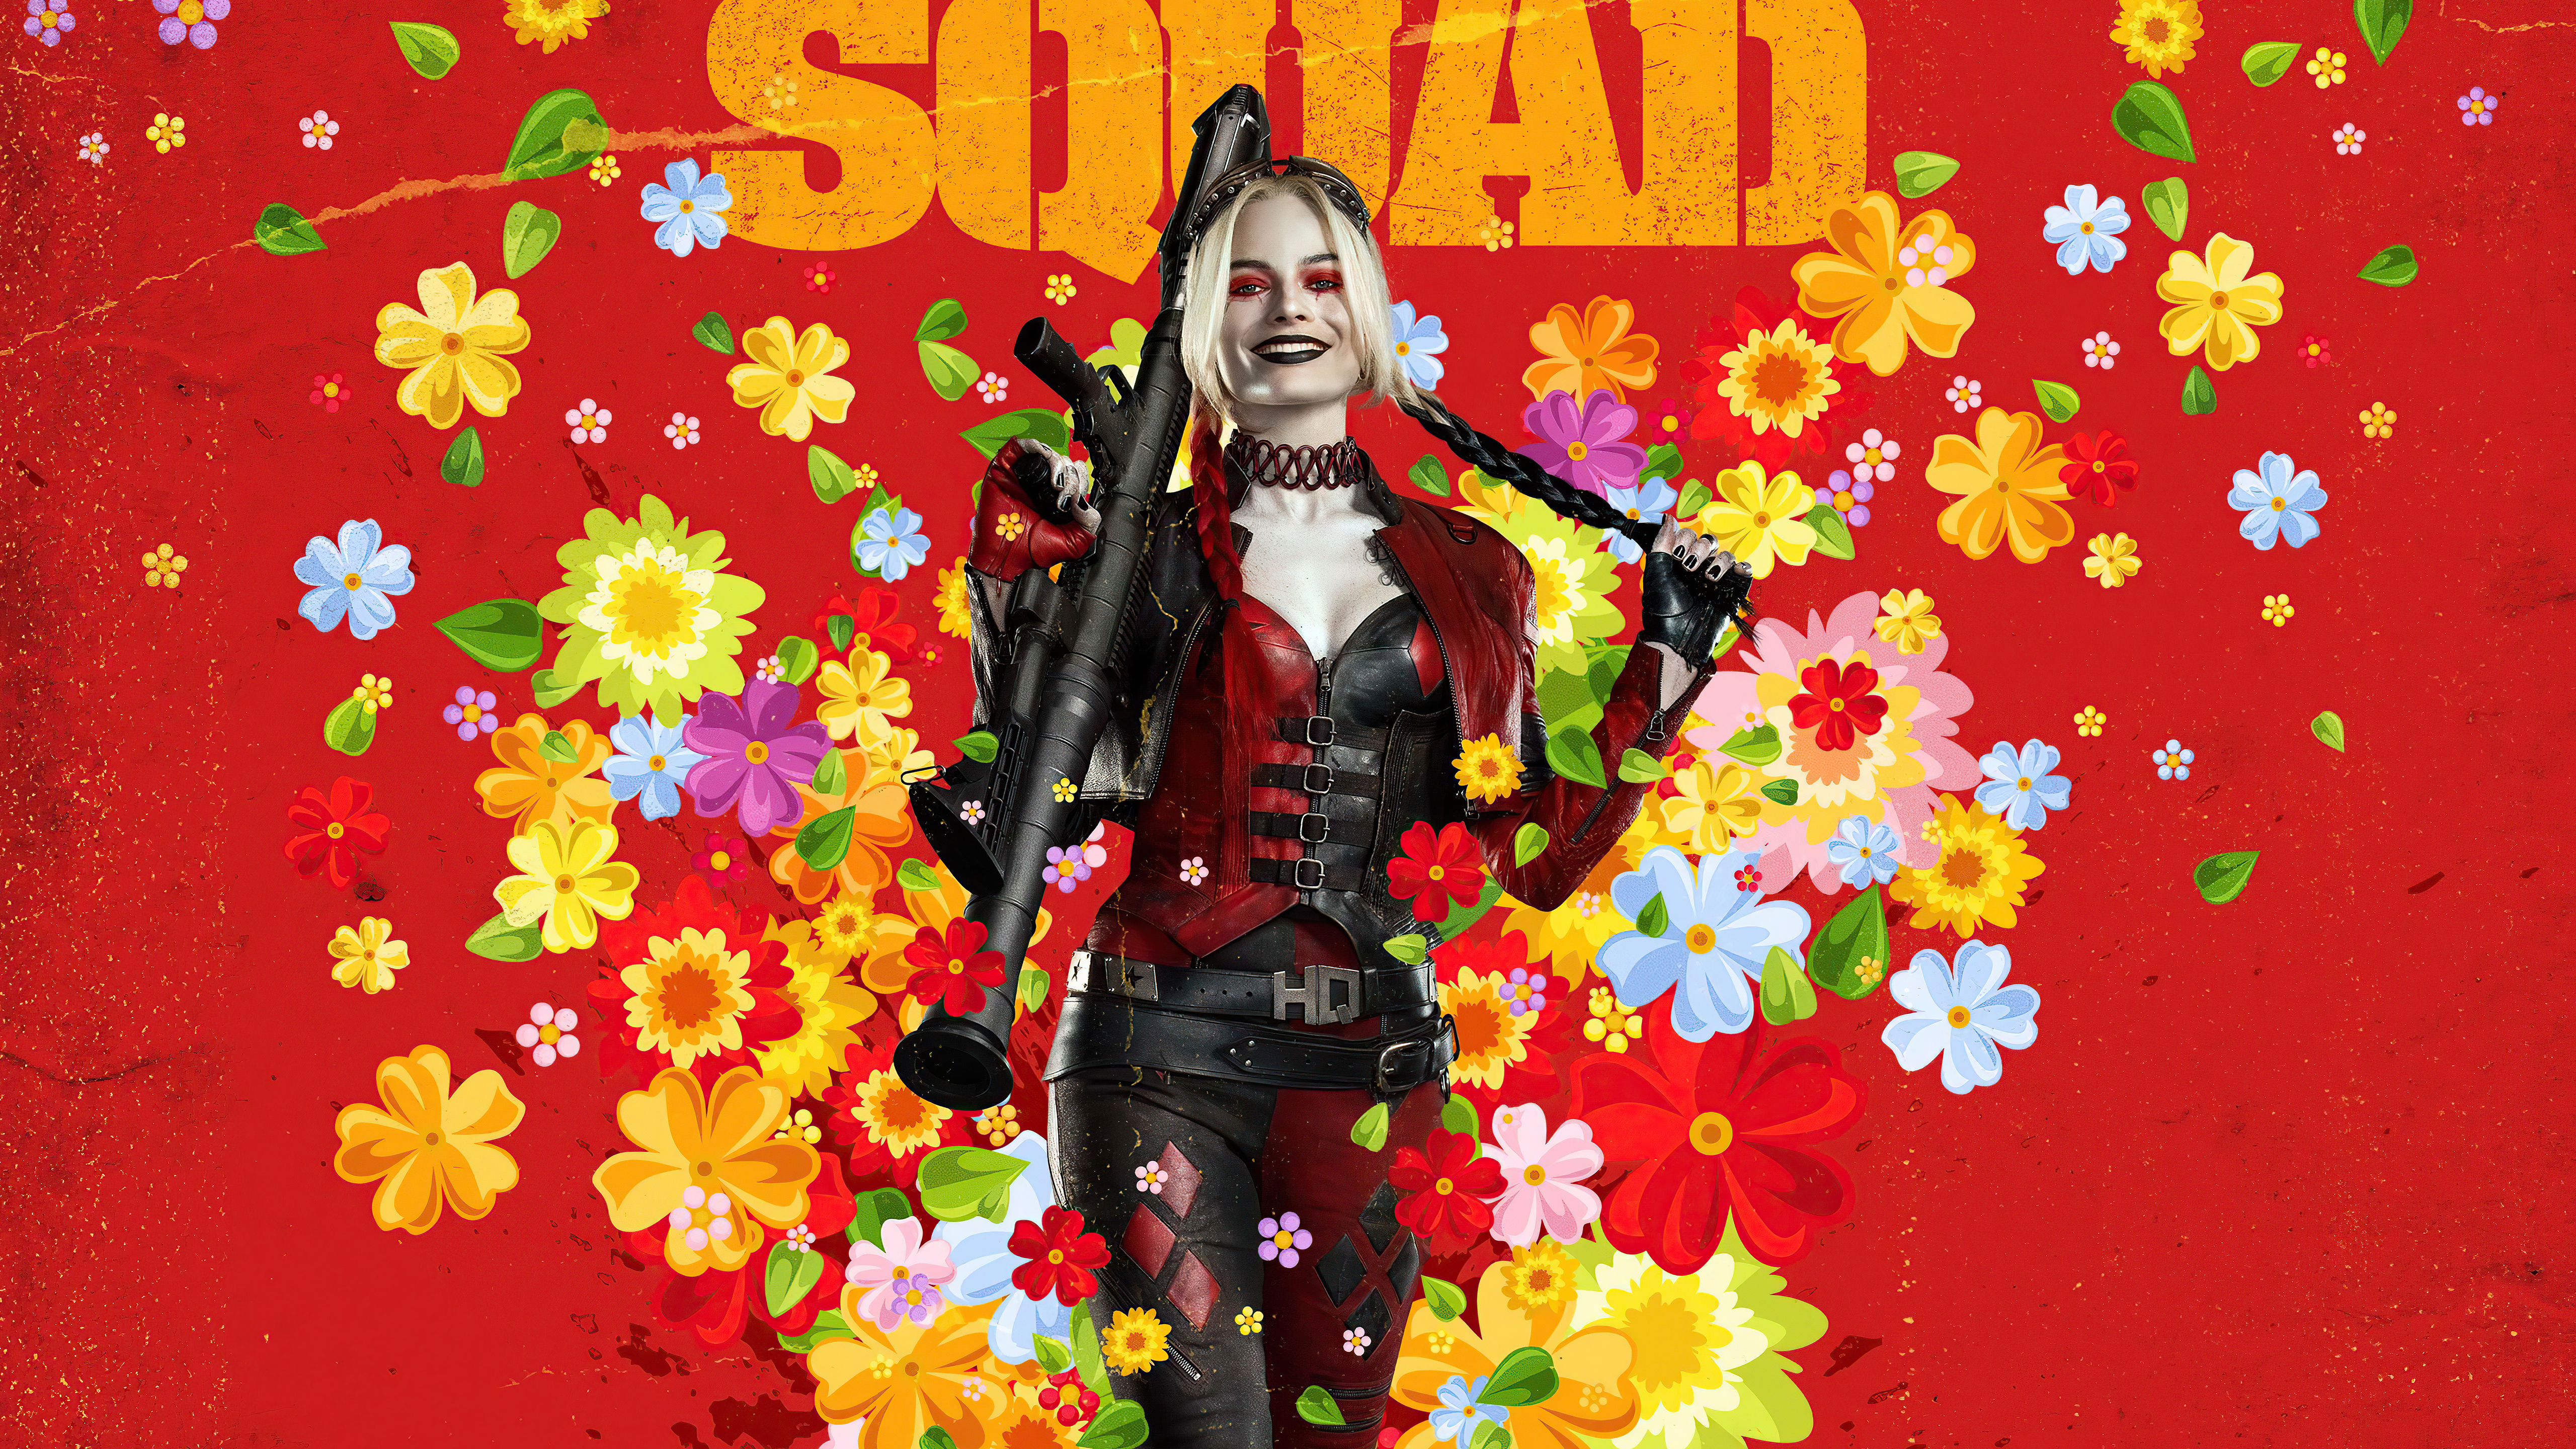 harley quinn the suicide squad 4k 1618167076 - Harley Quinn The Suicide Squad 4k - Harley Quinn The Suicide Squad 4k wallpapers